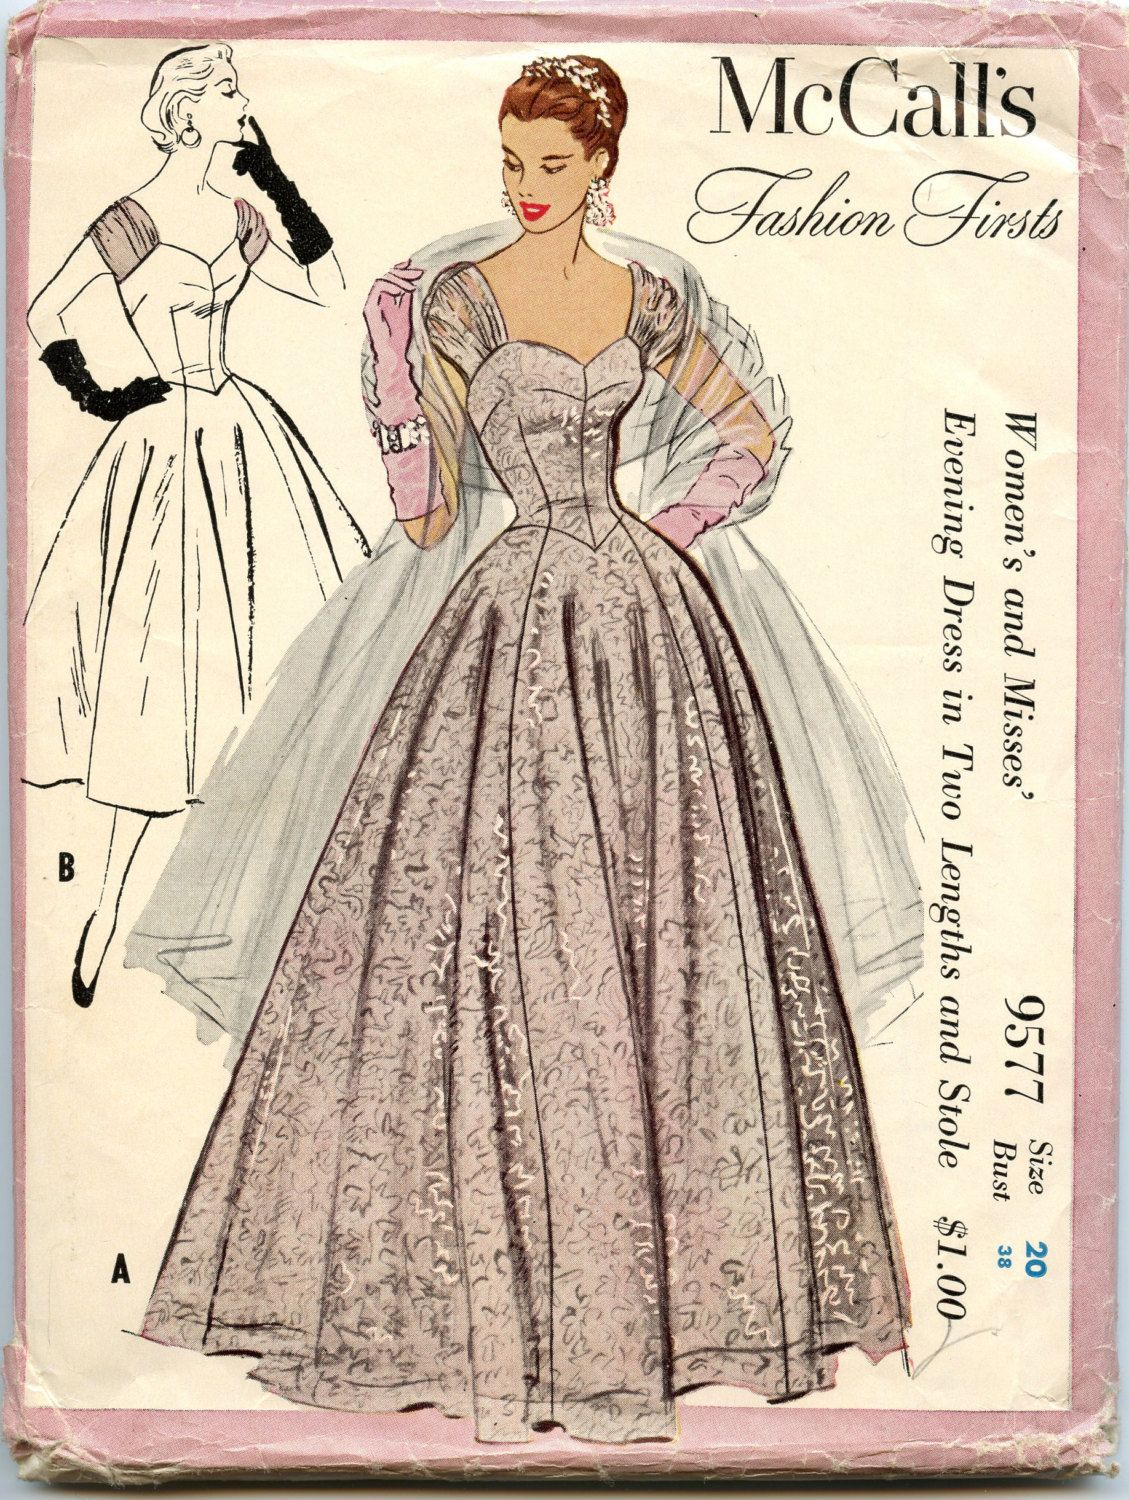 1950s McCalls 9577 Fashion Firsts Pattern Evening Dress in Two ...